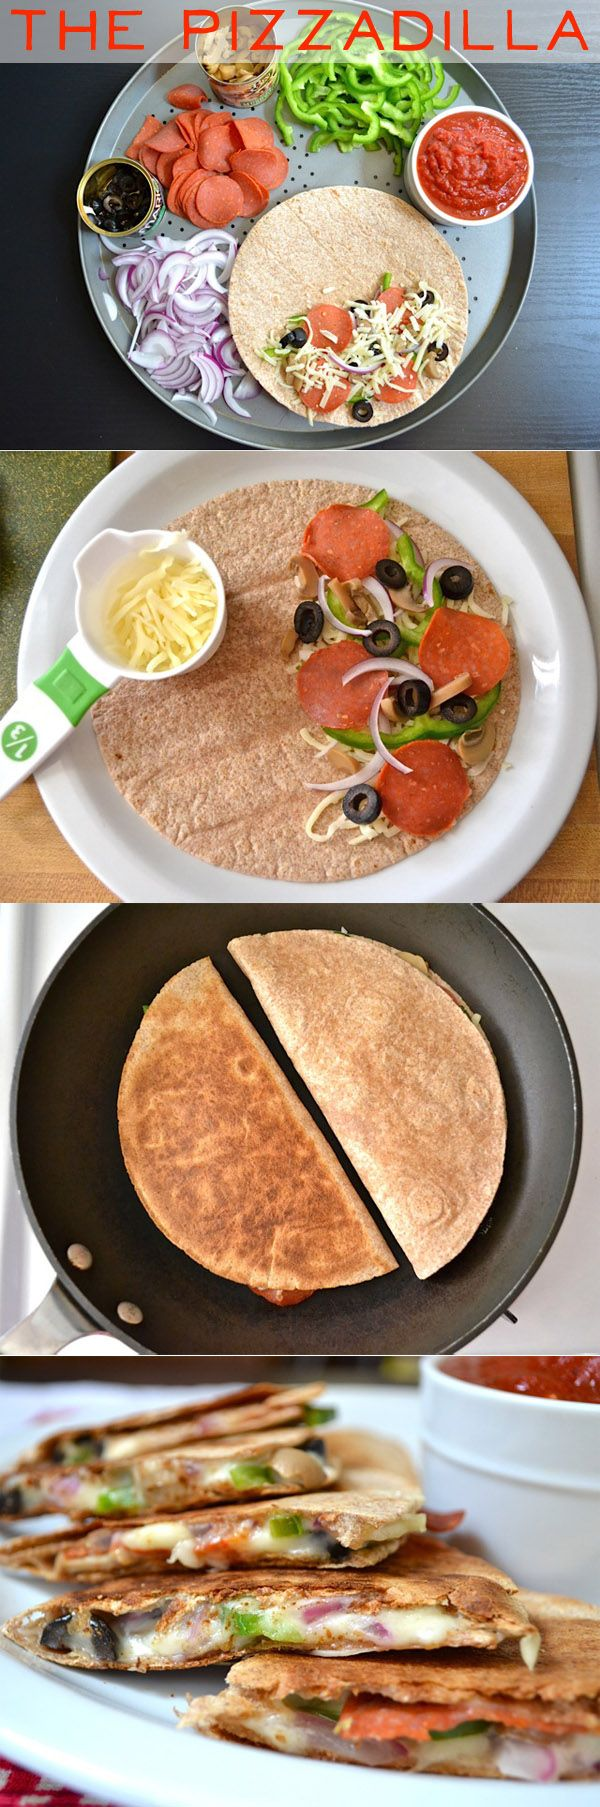 Pizzadilla and 12 Other Healthy And Gluten-Free Ways To Make Pizza. Great ideas! #glutenfree